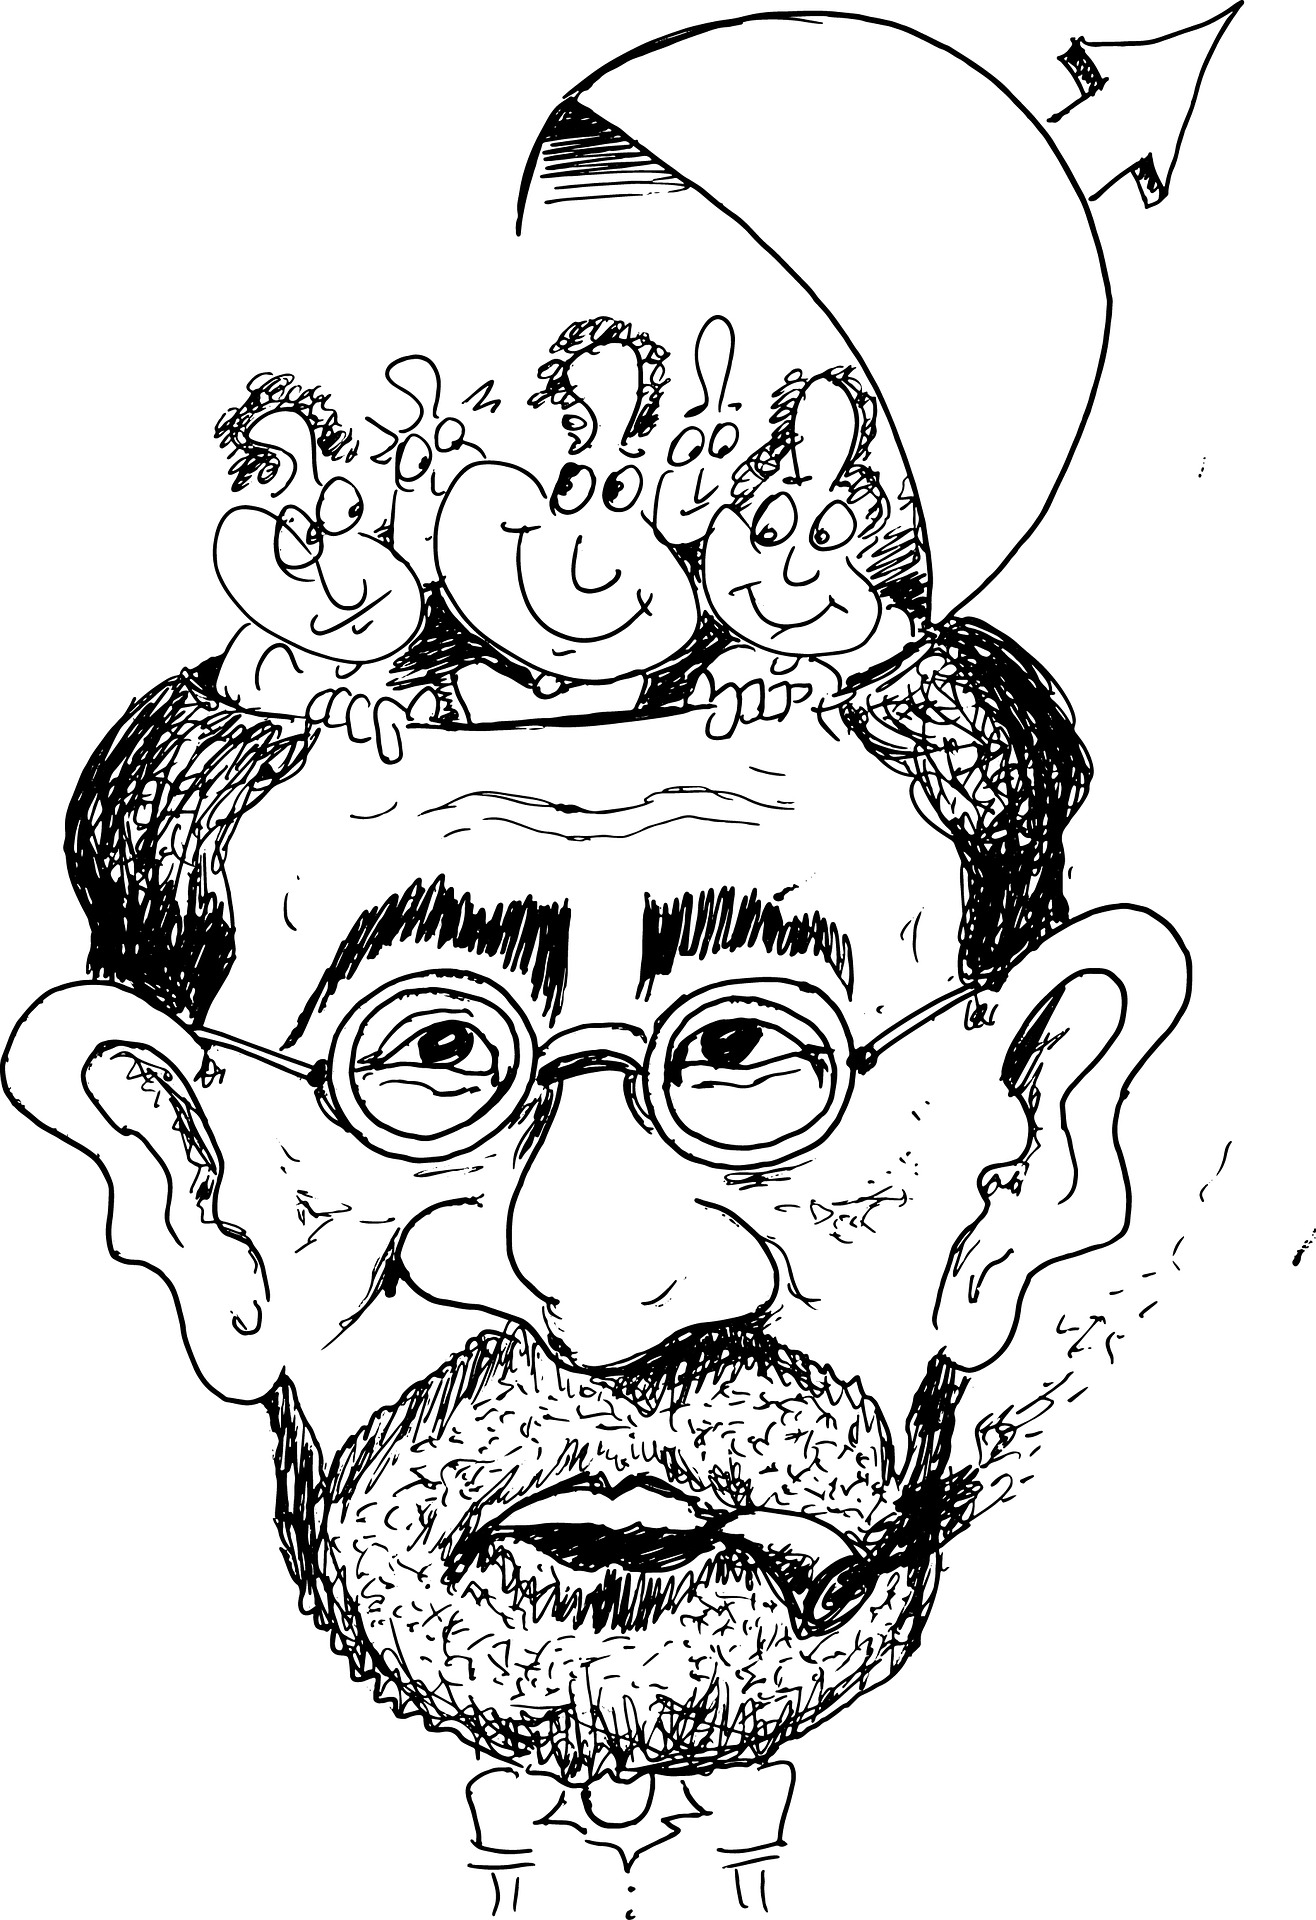 sigmund freud - Anxiety Affects - Understanding Childhood Fears and Anxieties